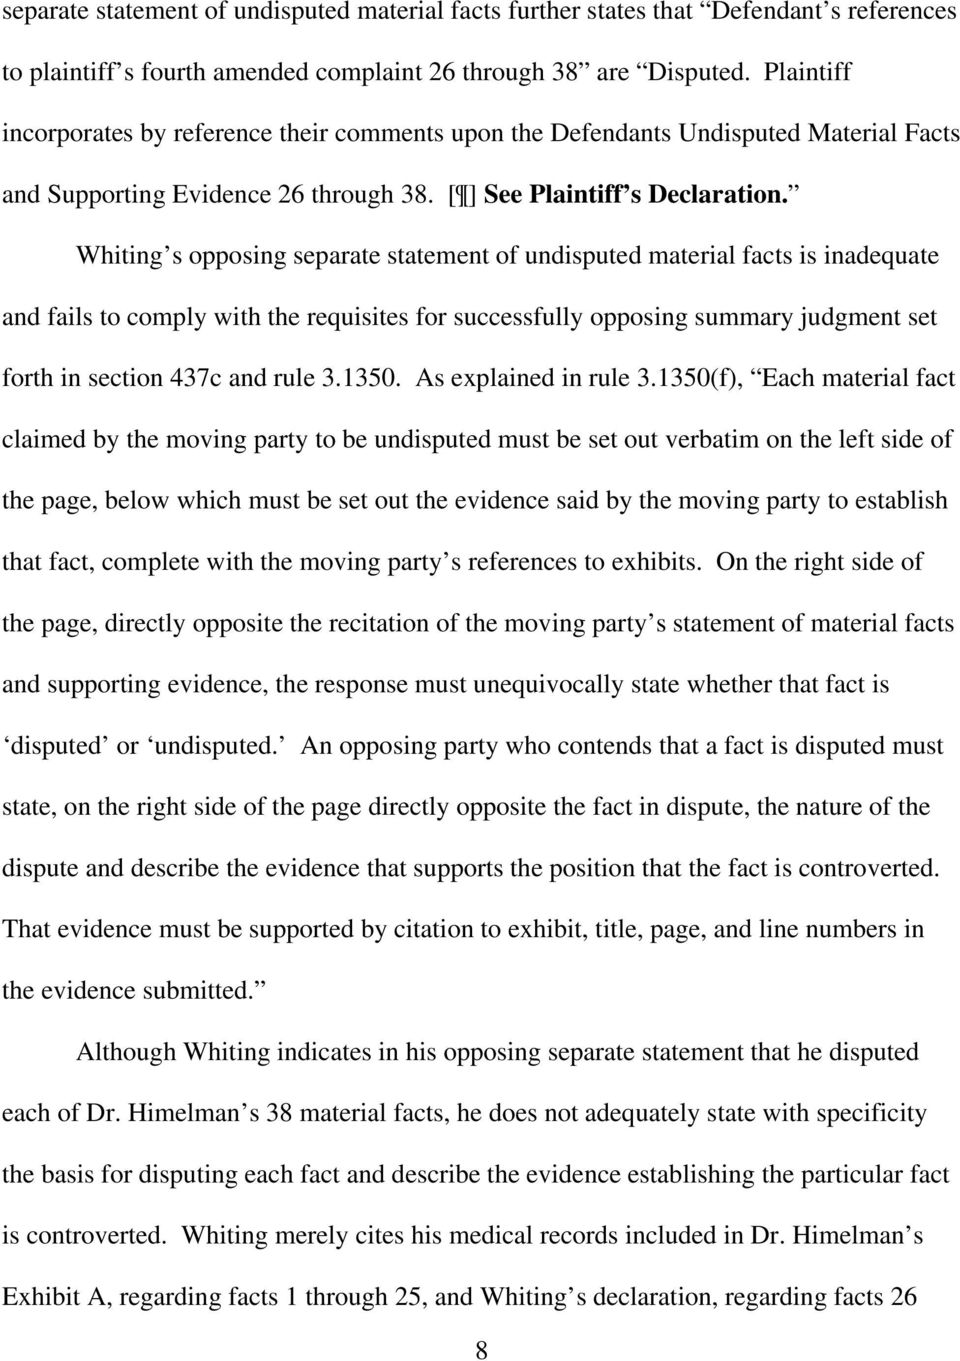 Whiting s opposing separate statement of undisputed material facts is inadequate and fails to comply with the requisites for successfully opposing summary judgment set forth in section 437c and rule